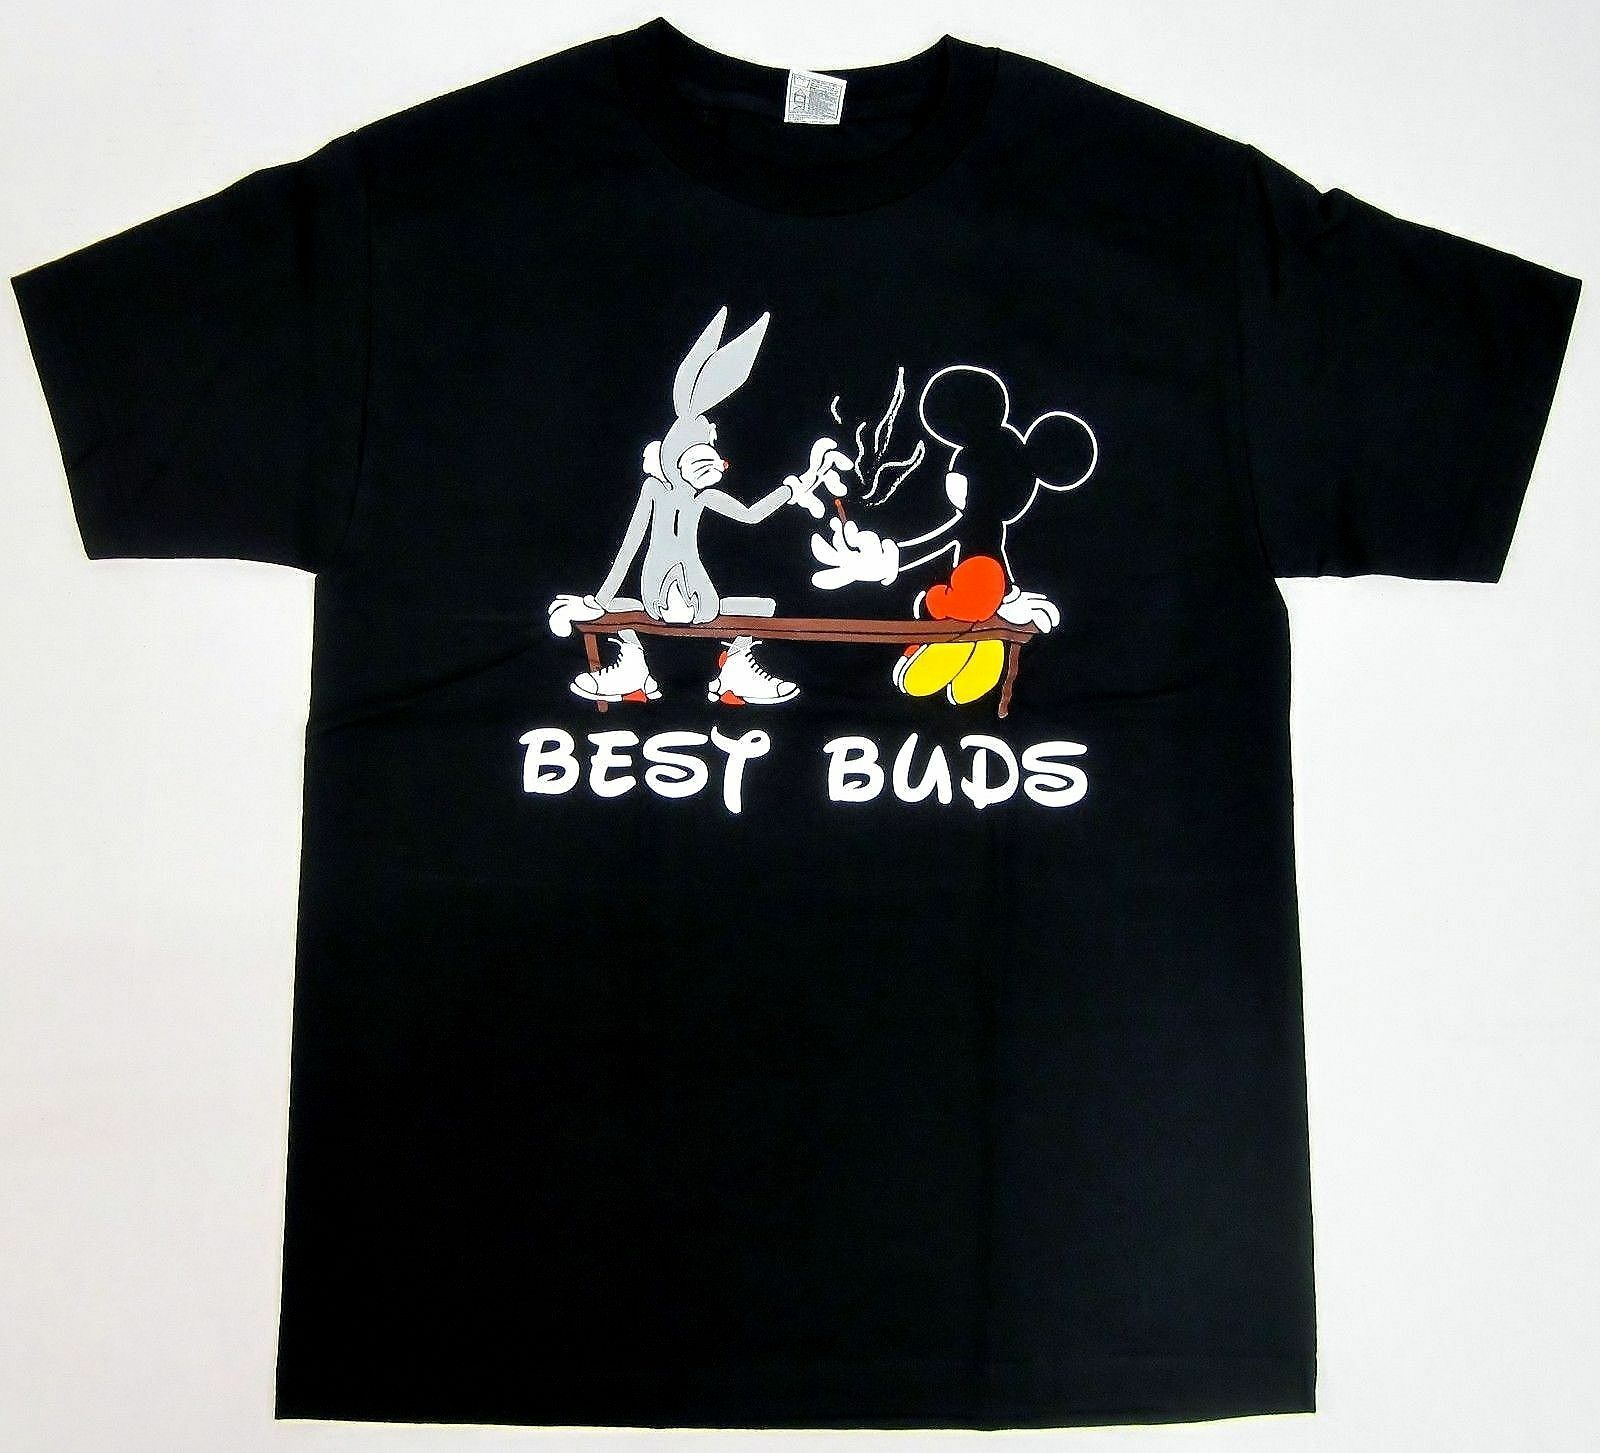 Best buds t shirt fun bunny mouse marijuana dope hipster for I like insects shirt